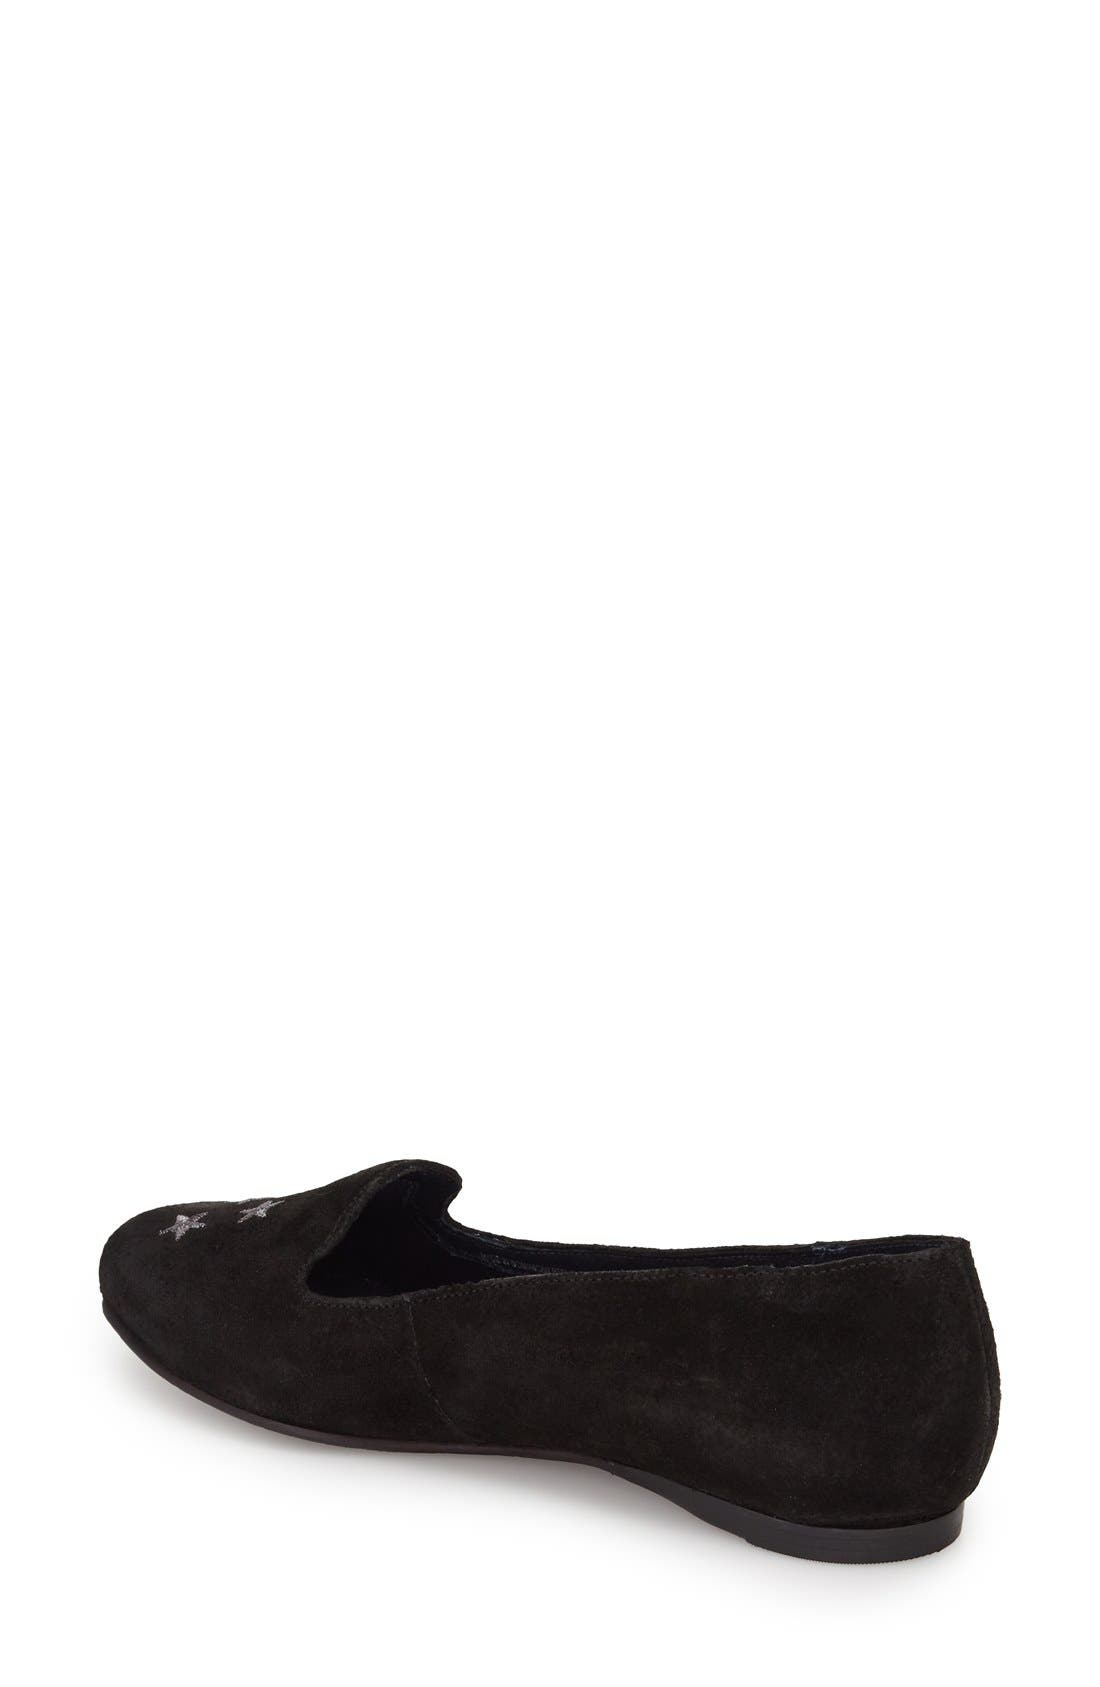 Starstuck Loafer,                             Alternate thumbnail 2, color,                             Black Suede